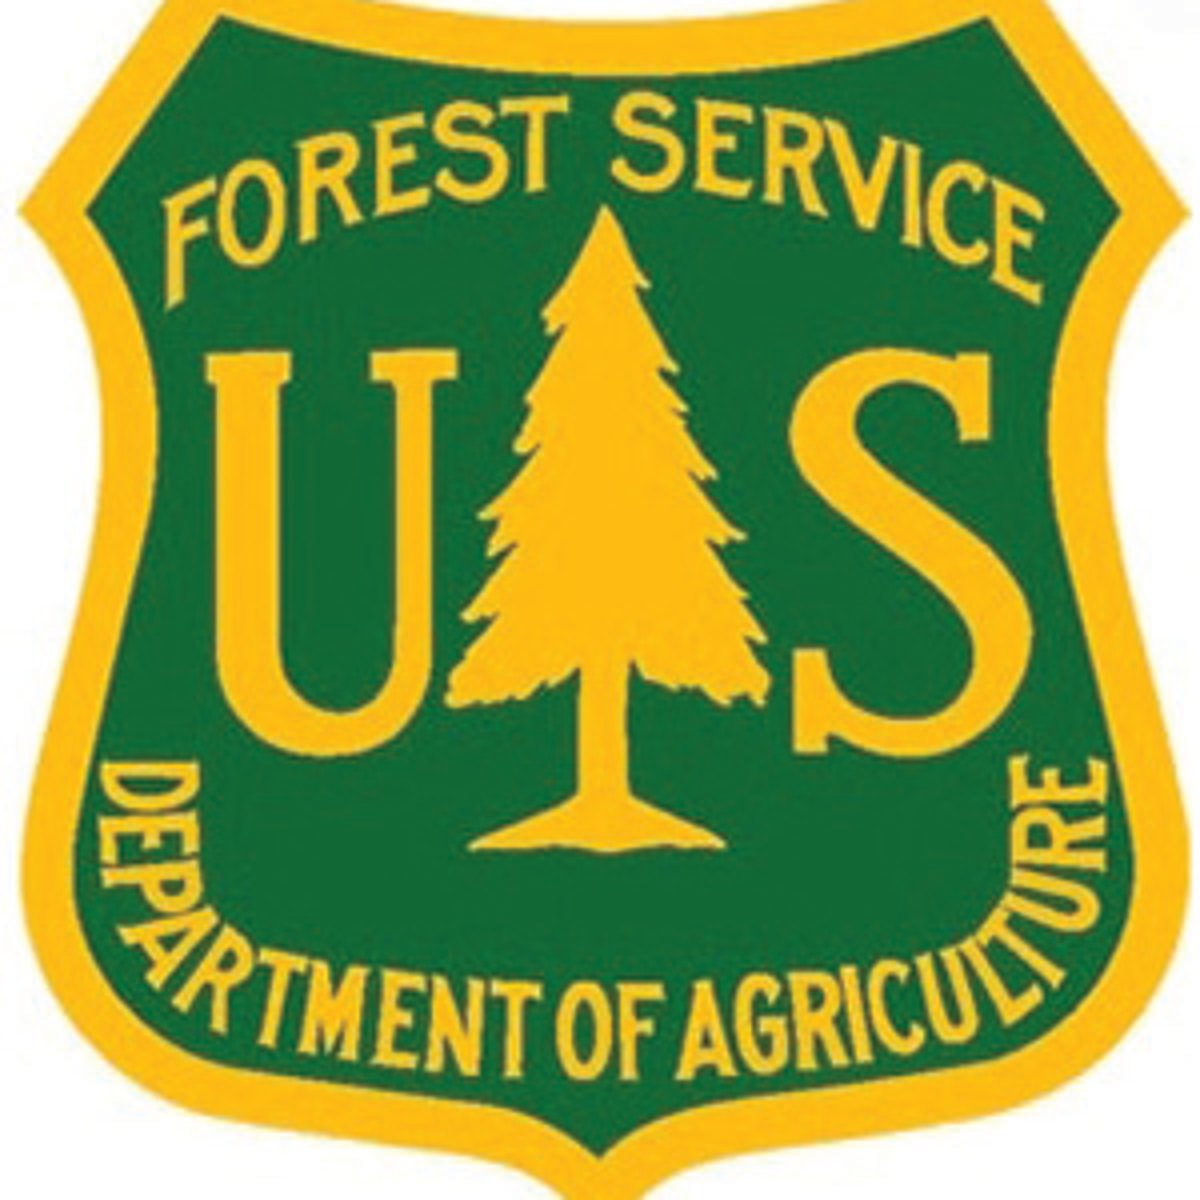 Forest Service road maps still available   News   elkodaily.com